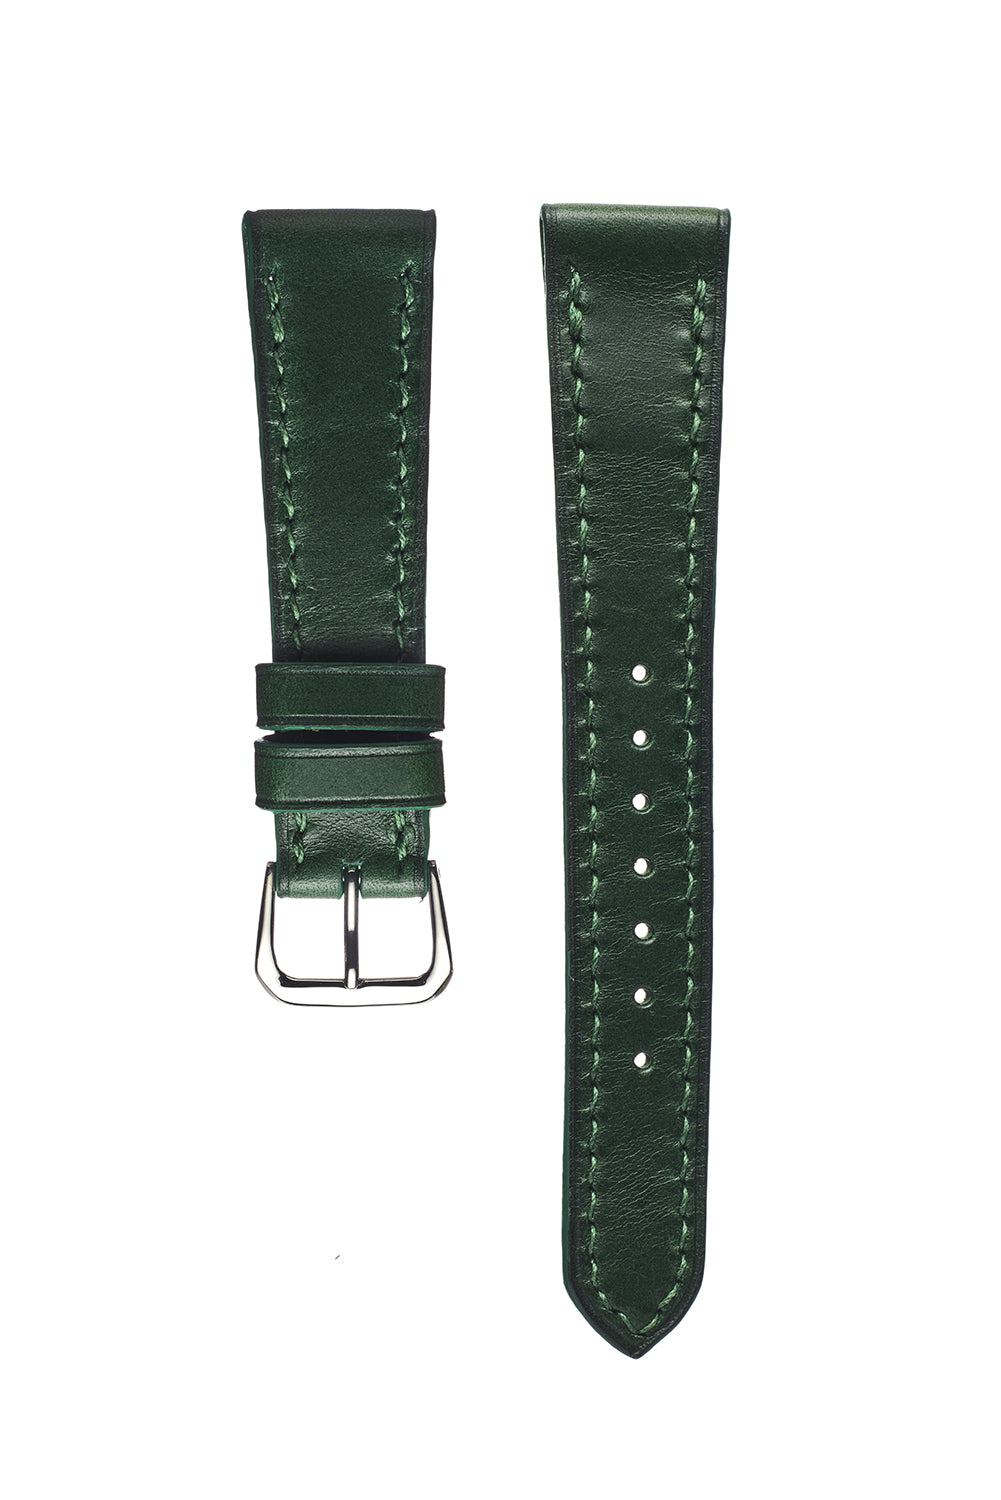 Racing Green Buttero Calfskin Watch Strap